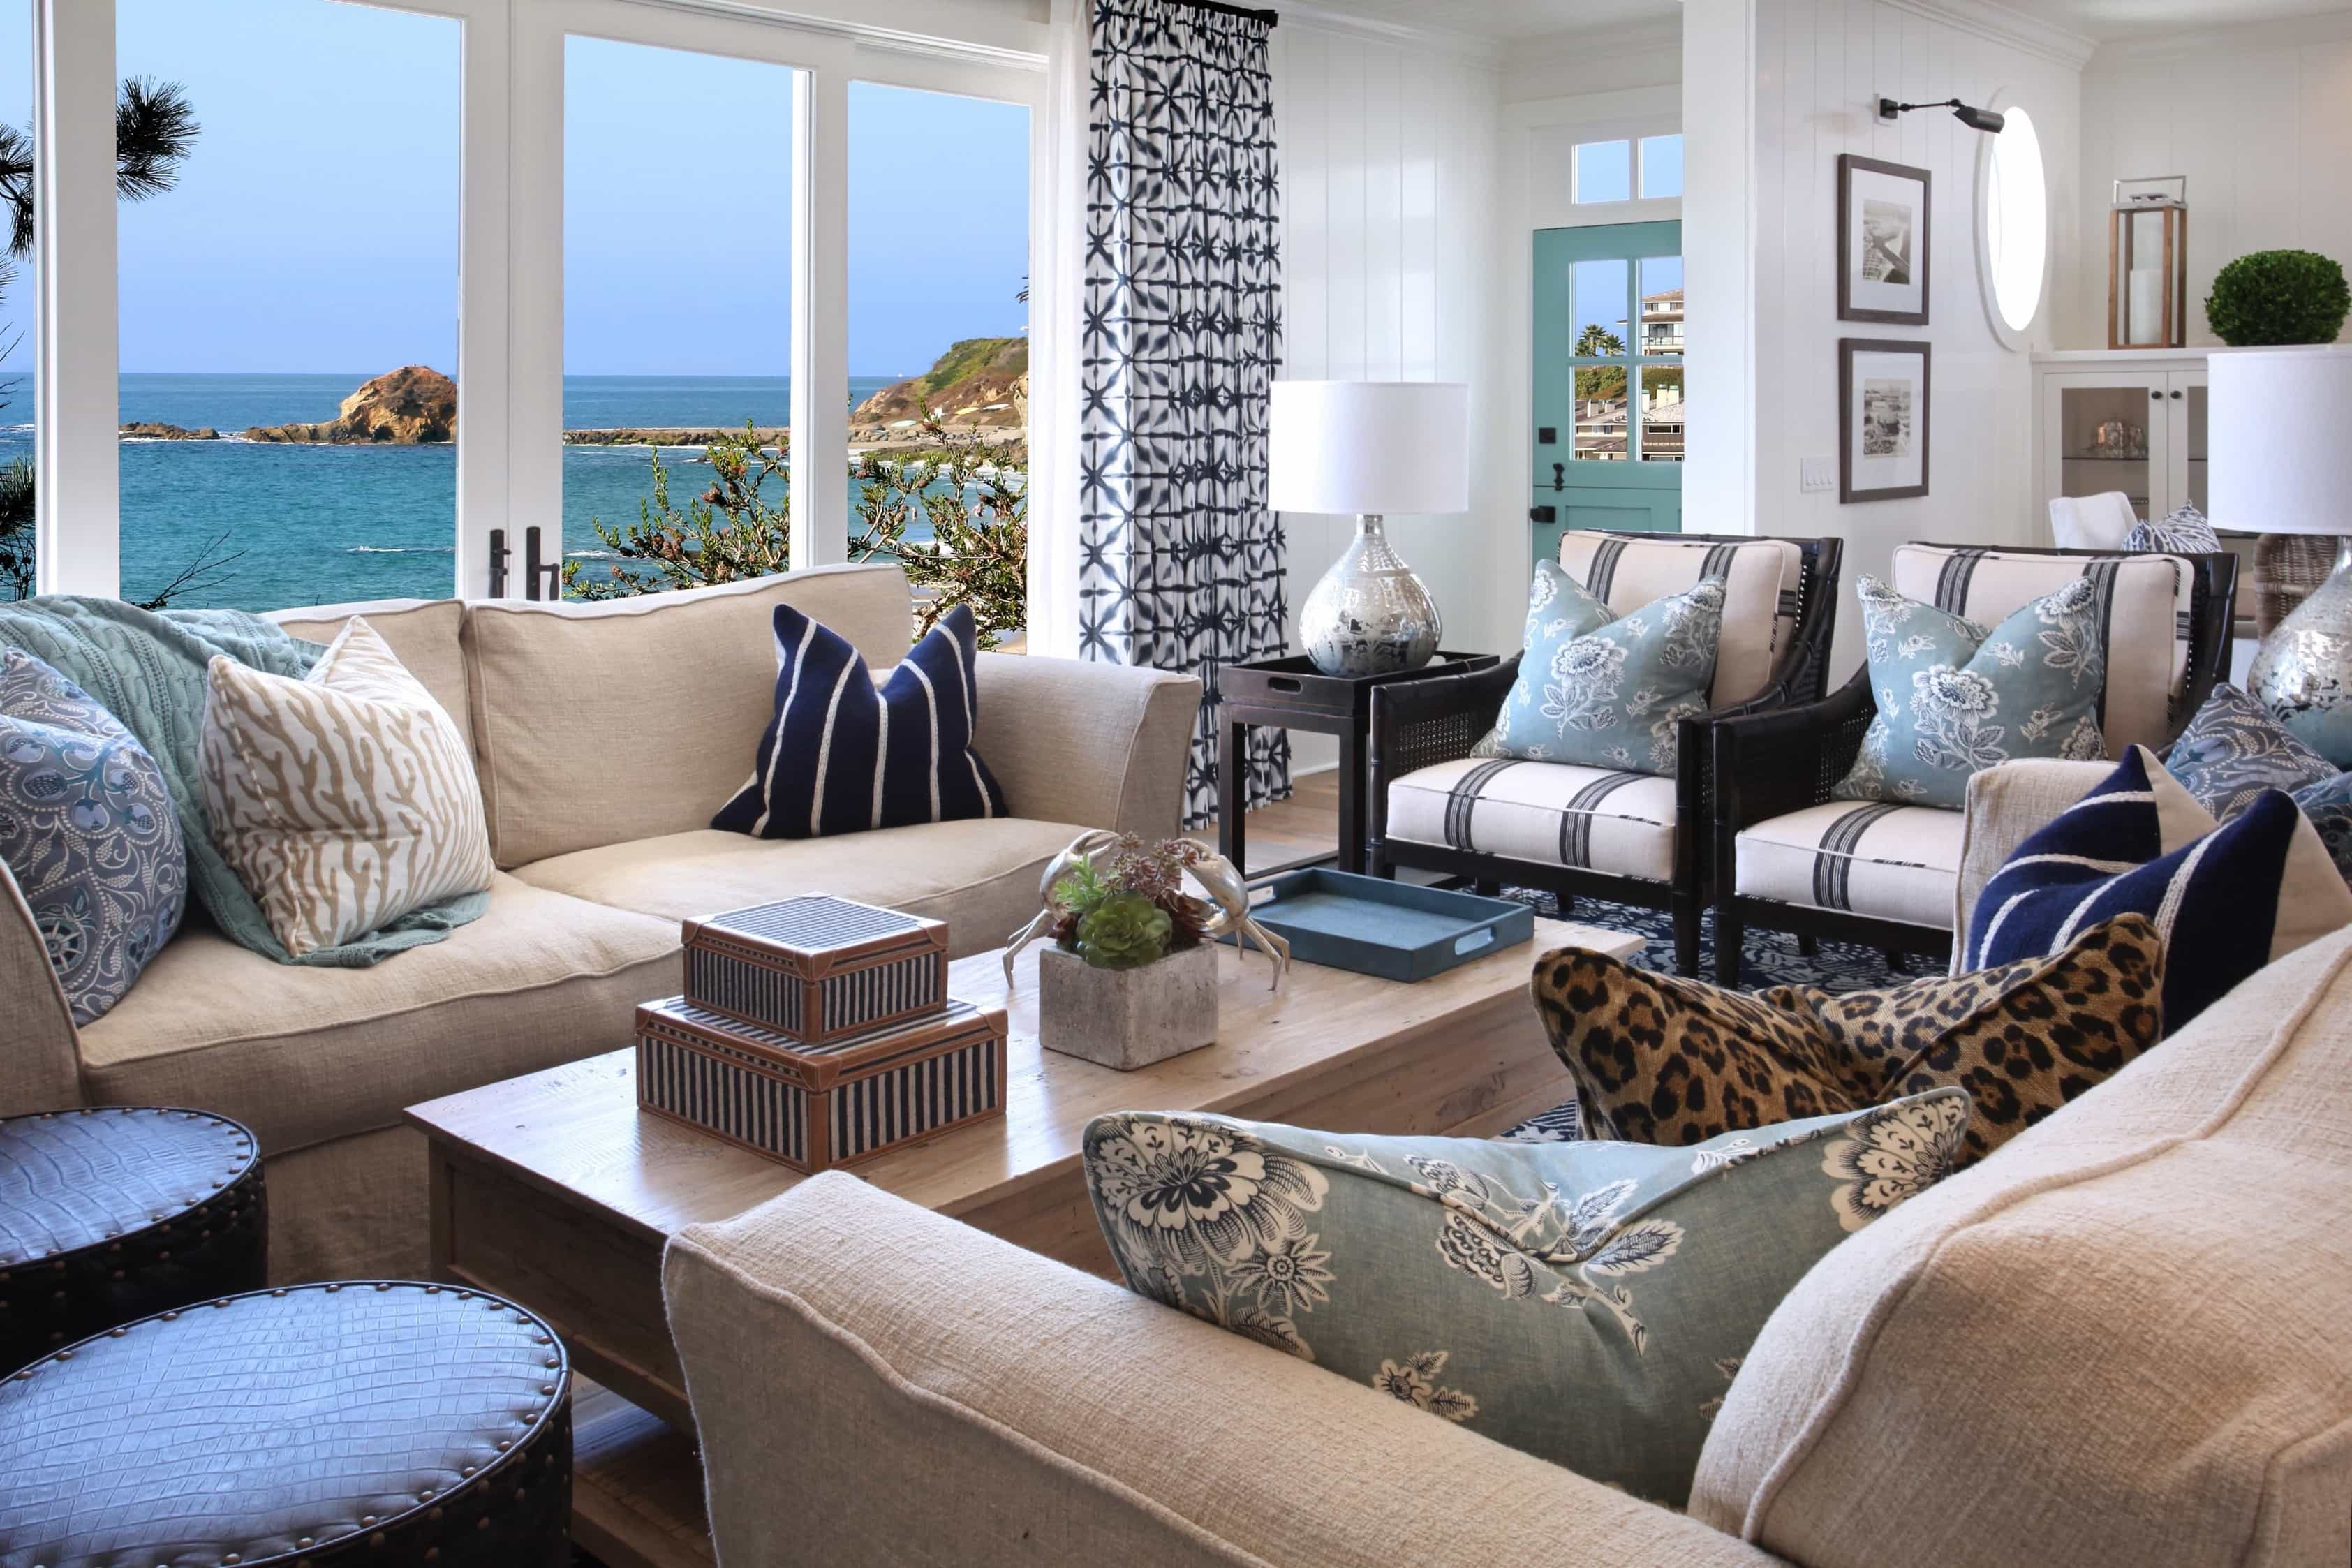 blue and white coastal living room with ocean view 50395 house decoration ideas. Black Bedroom Furniture Sets. Home Design Ideas